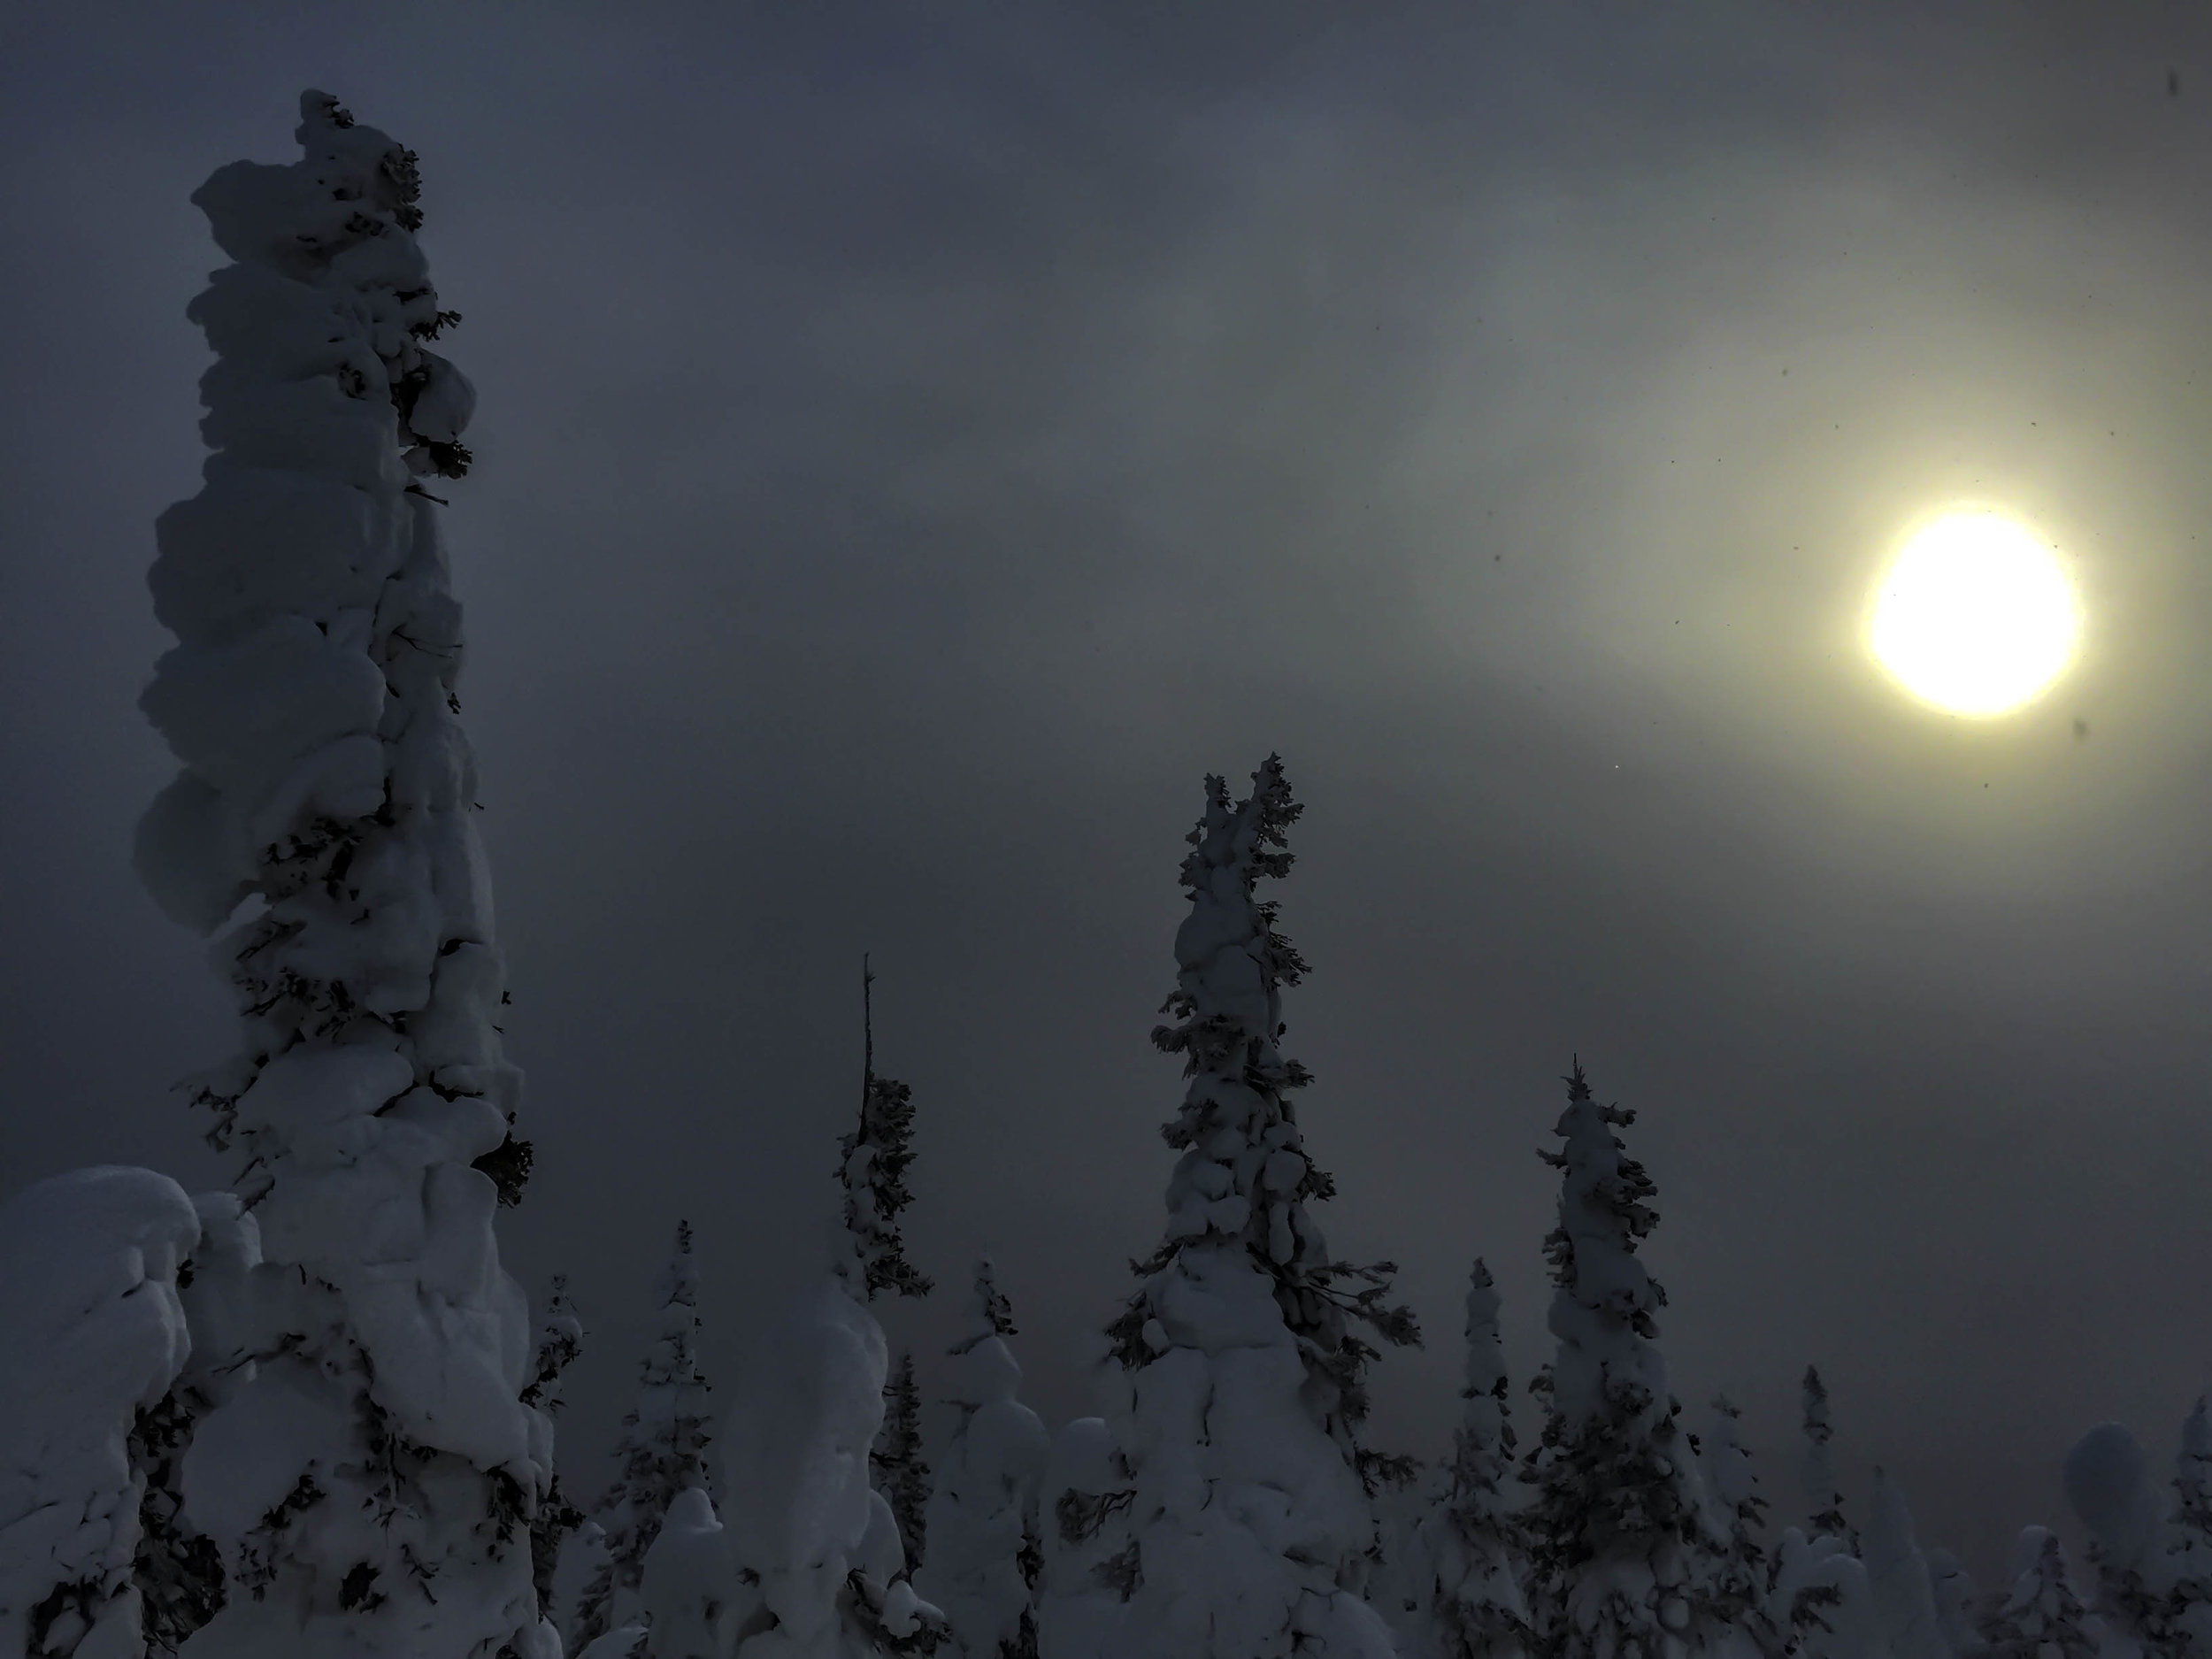 A snow storm rolls in and blocks out most of the sun making it feel like night.